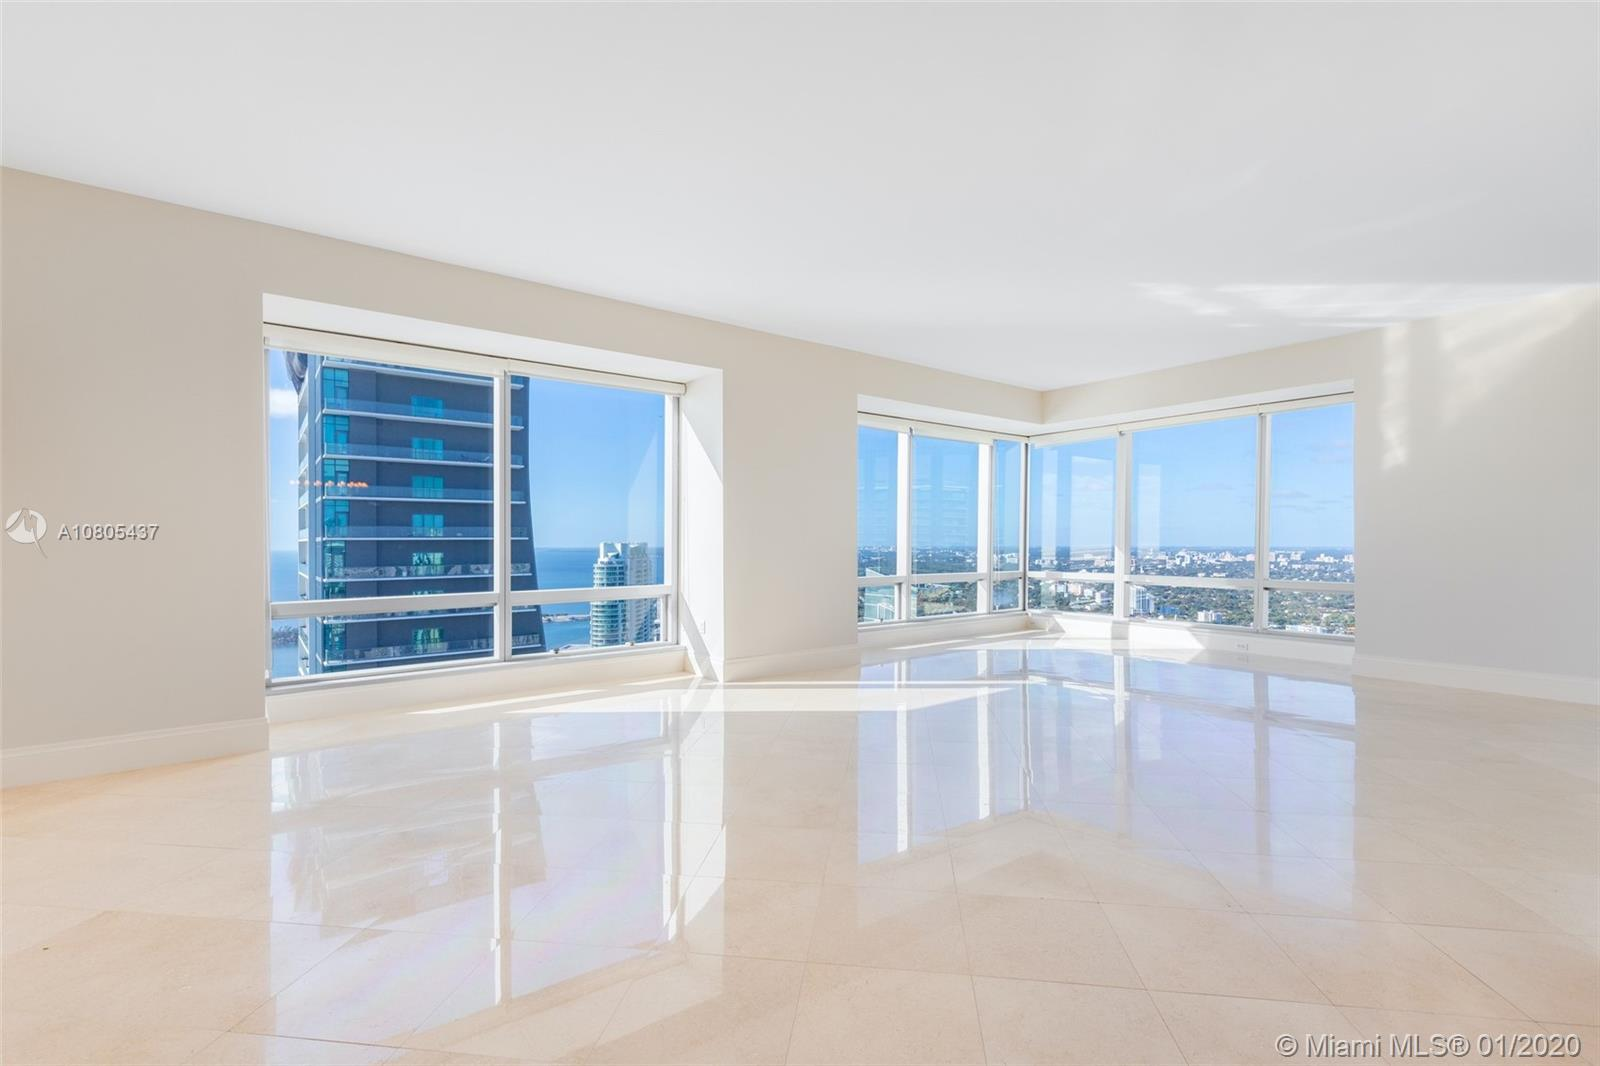 Tremendous Value at The Four Seasons Brickell. Soaring 51 floors into the Miami sky, this spacious 2